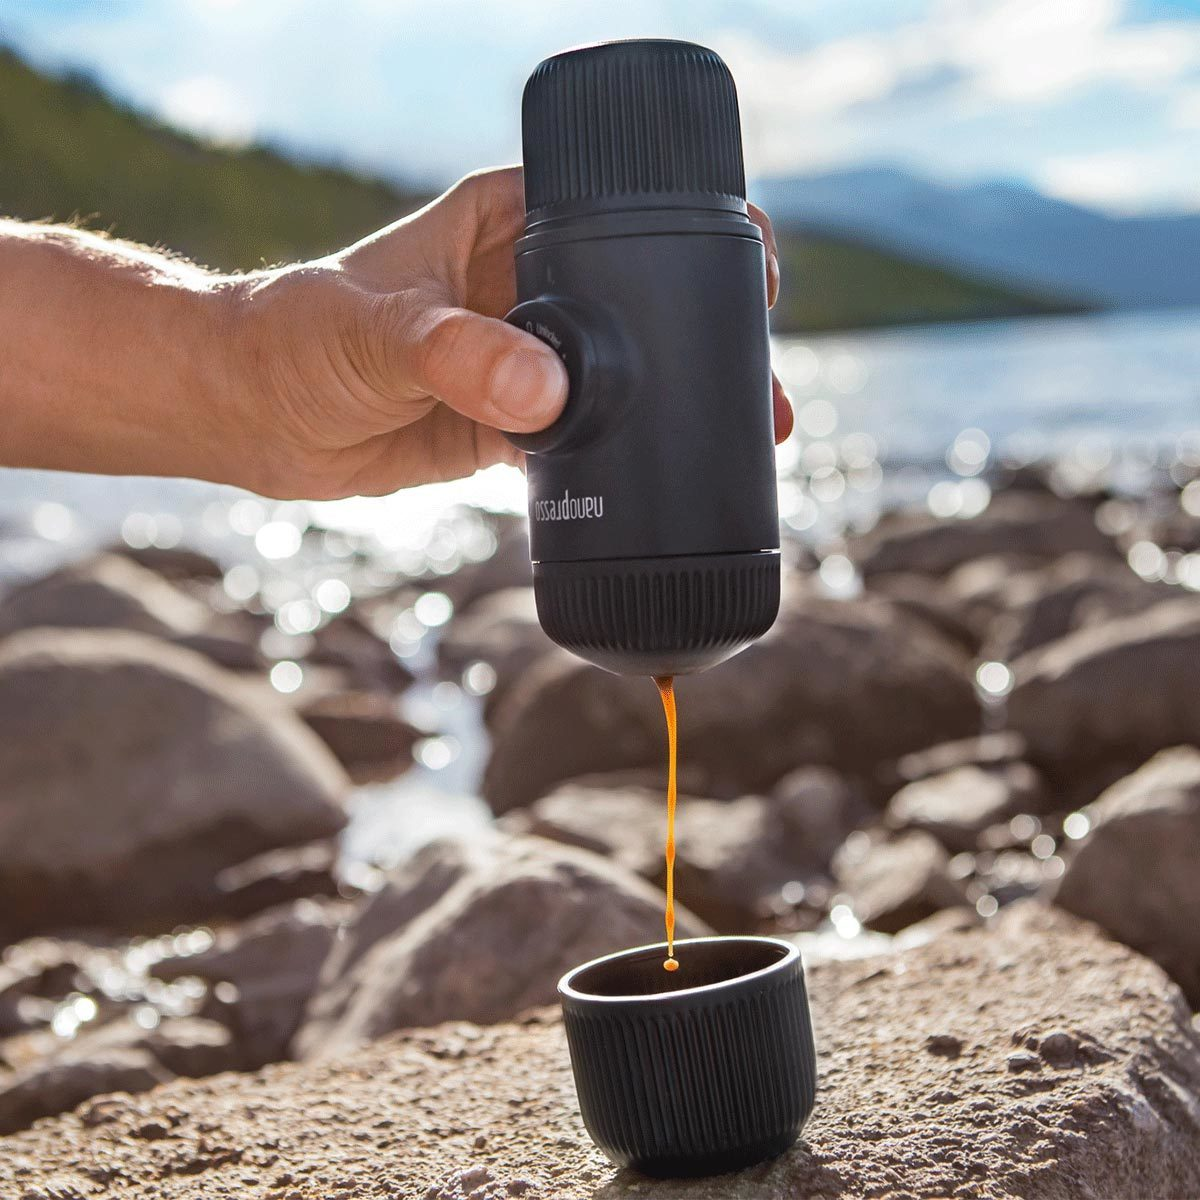 20 Genius Camping Gear Items You Can Find At Harbor